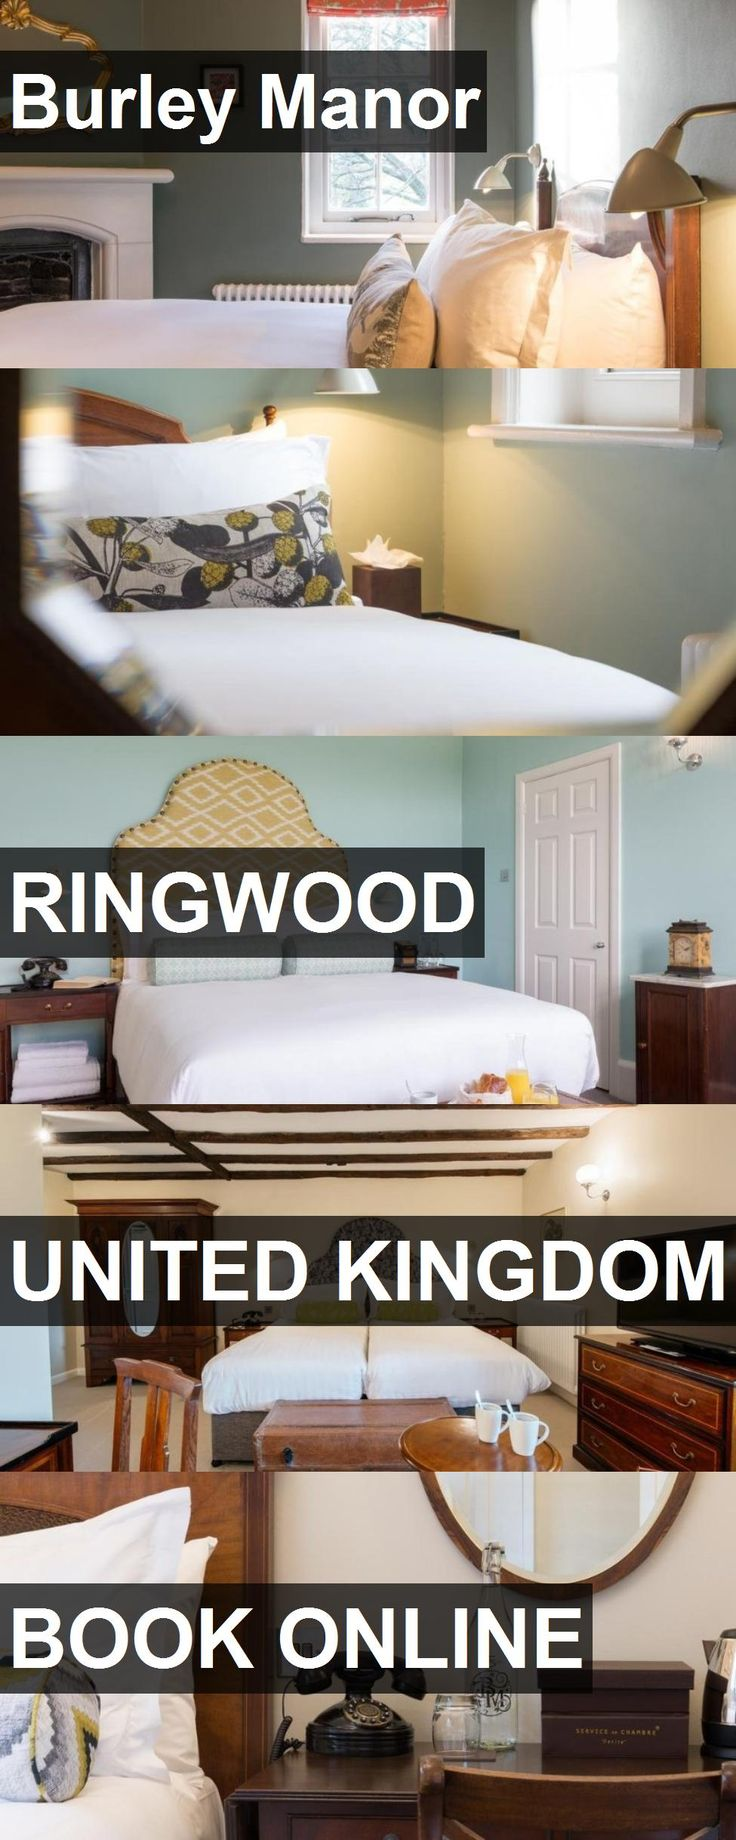 Hotel Burley Manor in Ringwood, United Kingdom. For more information, photos, reviews and best prices please follow the link. #UnitedKingdom #Ringwood #BurleyManor #hotel #travel #vacation